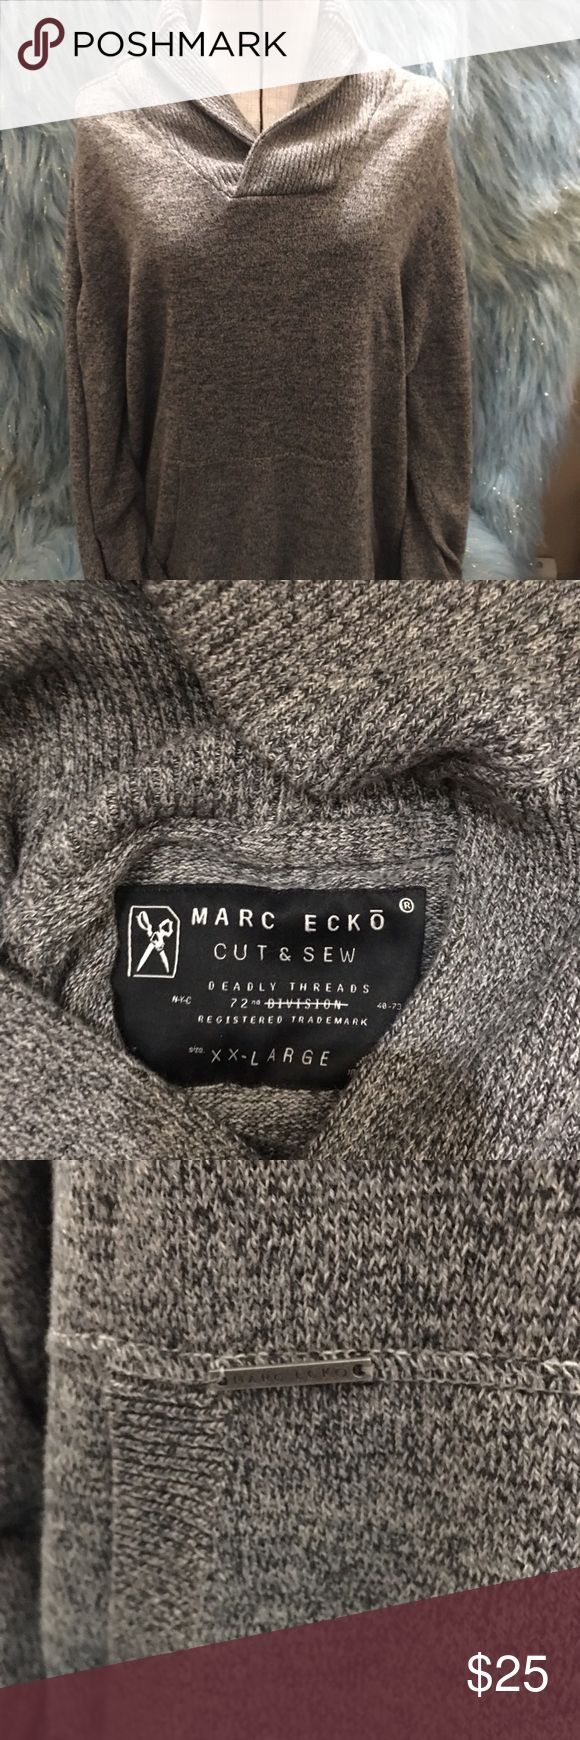 Marc Ecko cowl neck sweater Heathered grey cowl neck sweater. NWOT. If you have any questions please feel free to ask and as always reasonable offers are welcome!!! Marc Ecko Sweaters